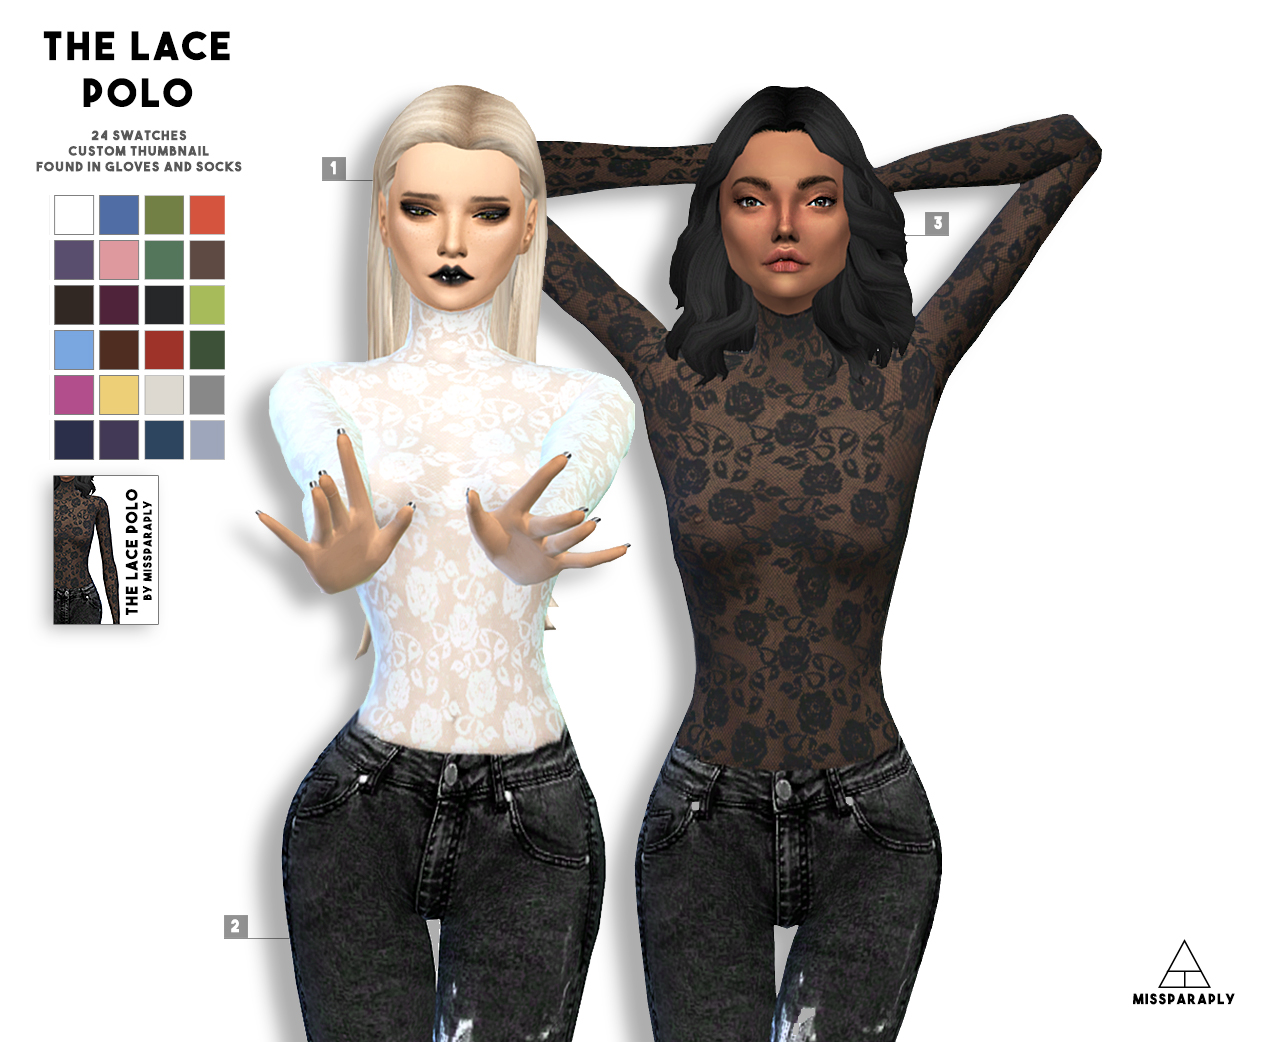 The Lace Polo by Miss Paraply